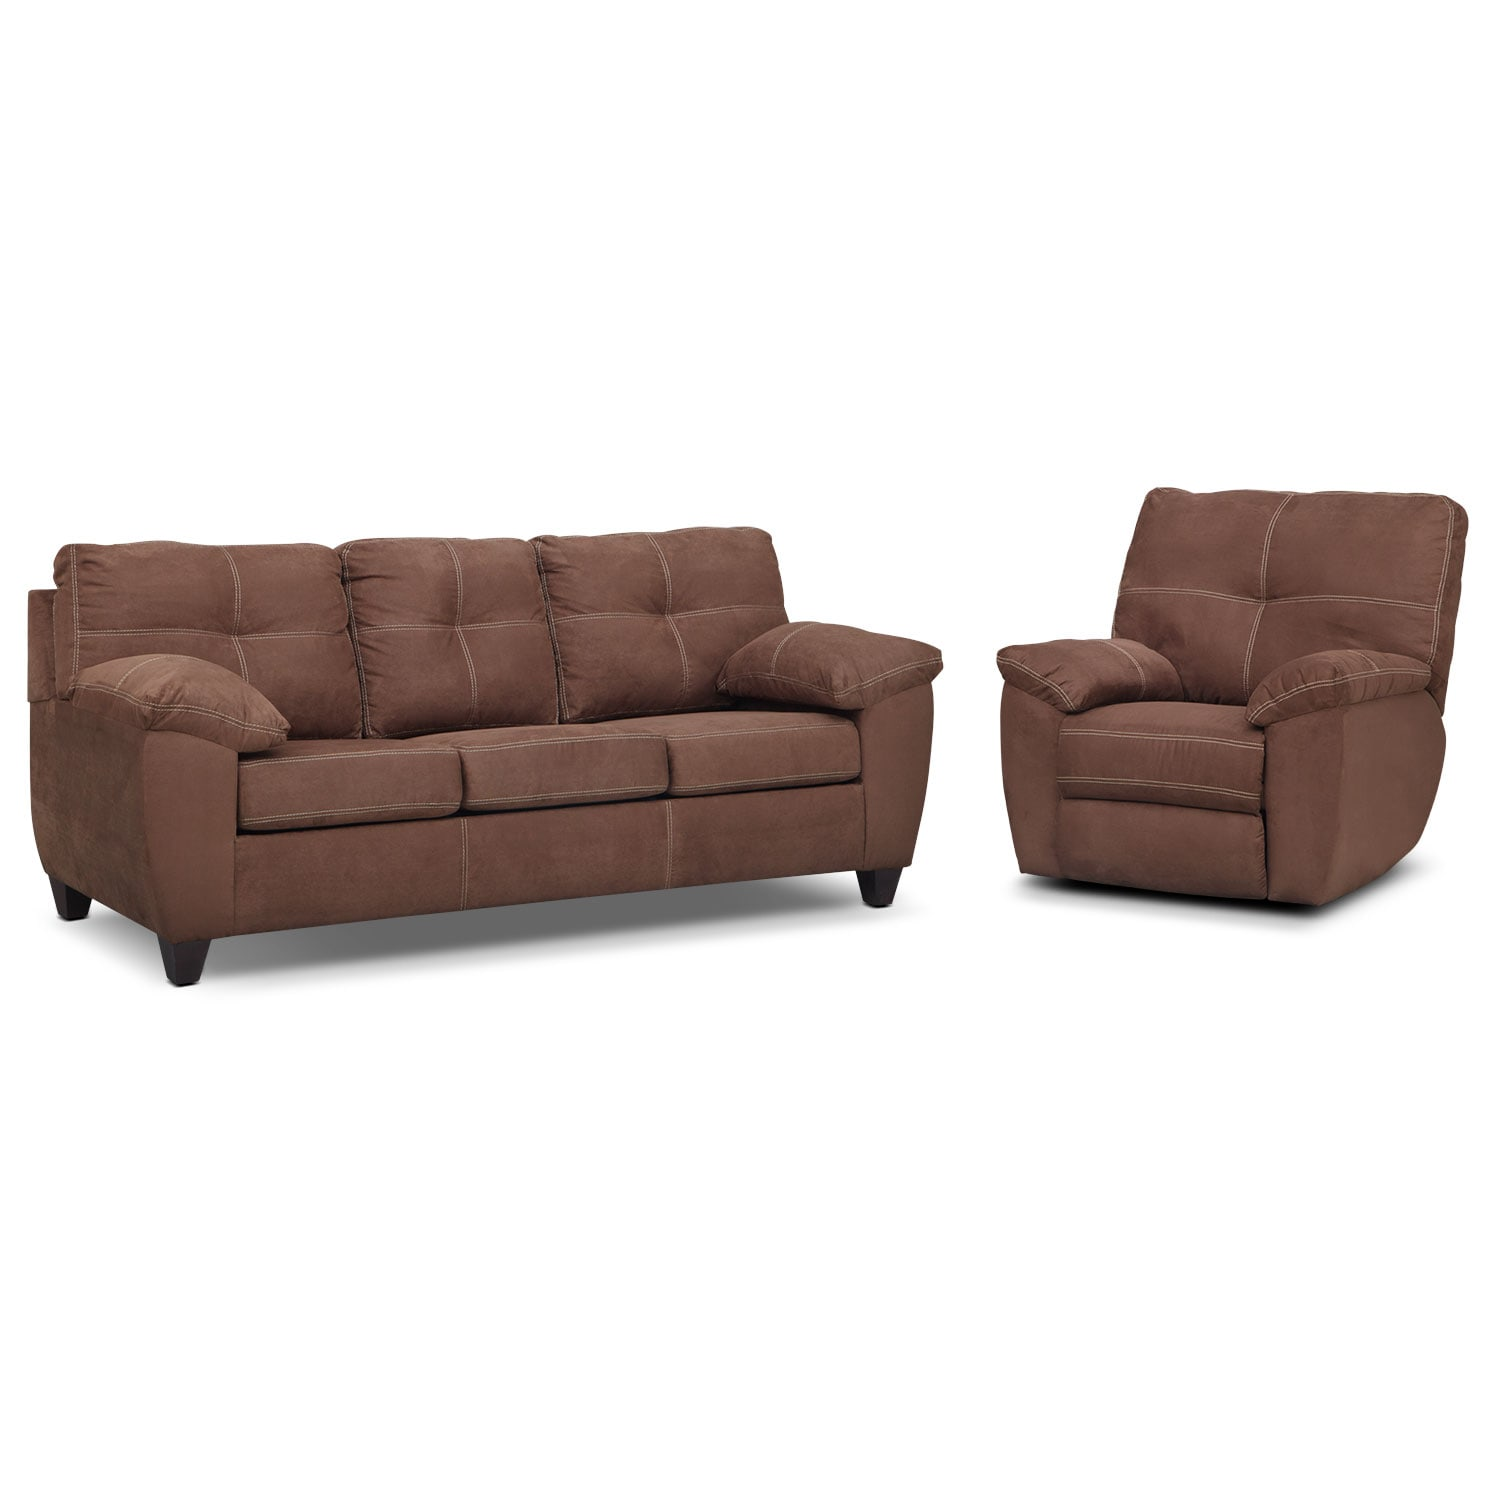 Living Room Furniture - Rialto Sofa and Glider Recliner Set - Coffee